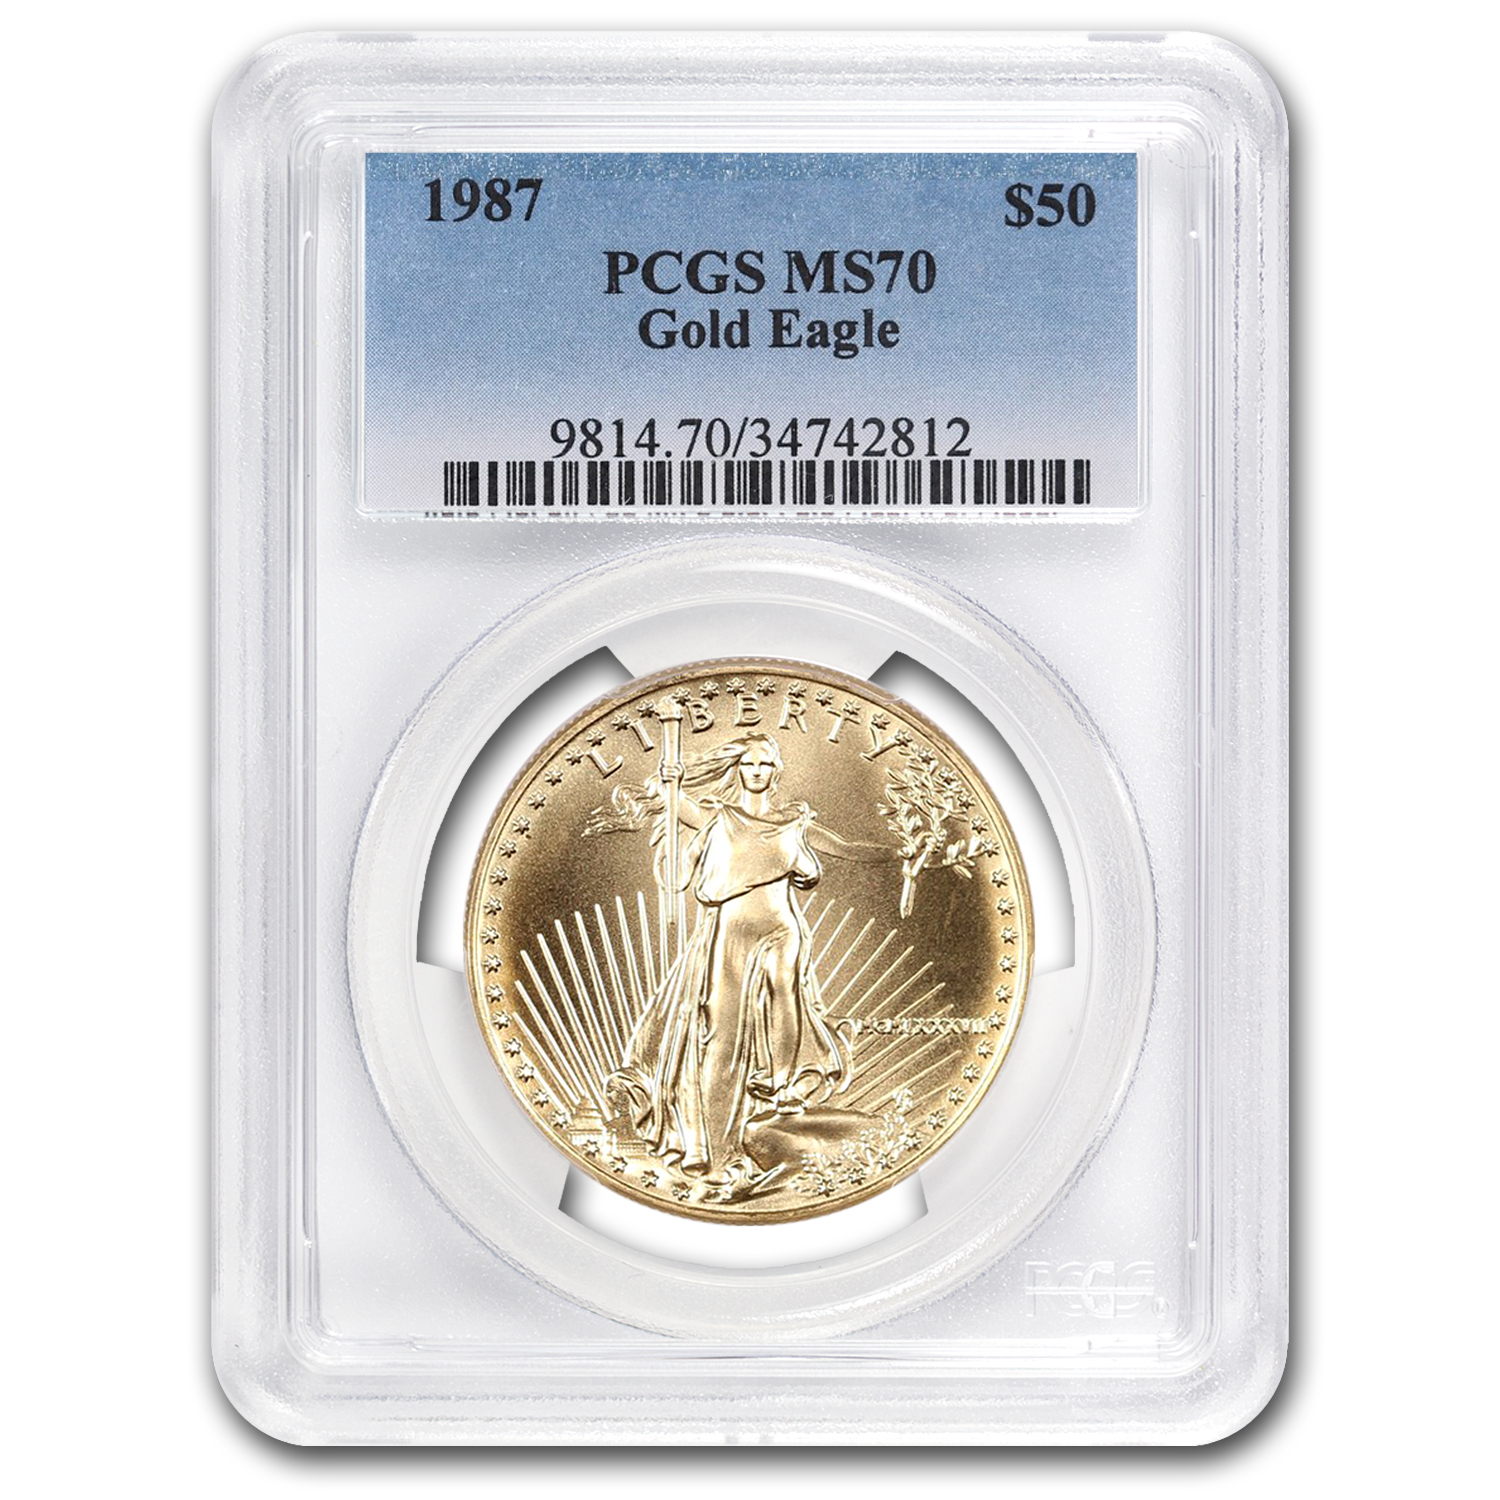 1987 1 oz Gold American Eagle MS-70 PCGS (Registry Set)